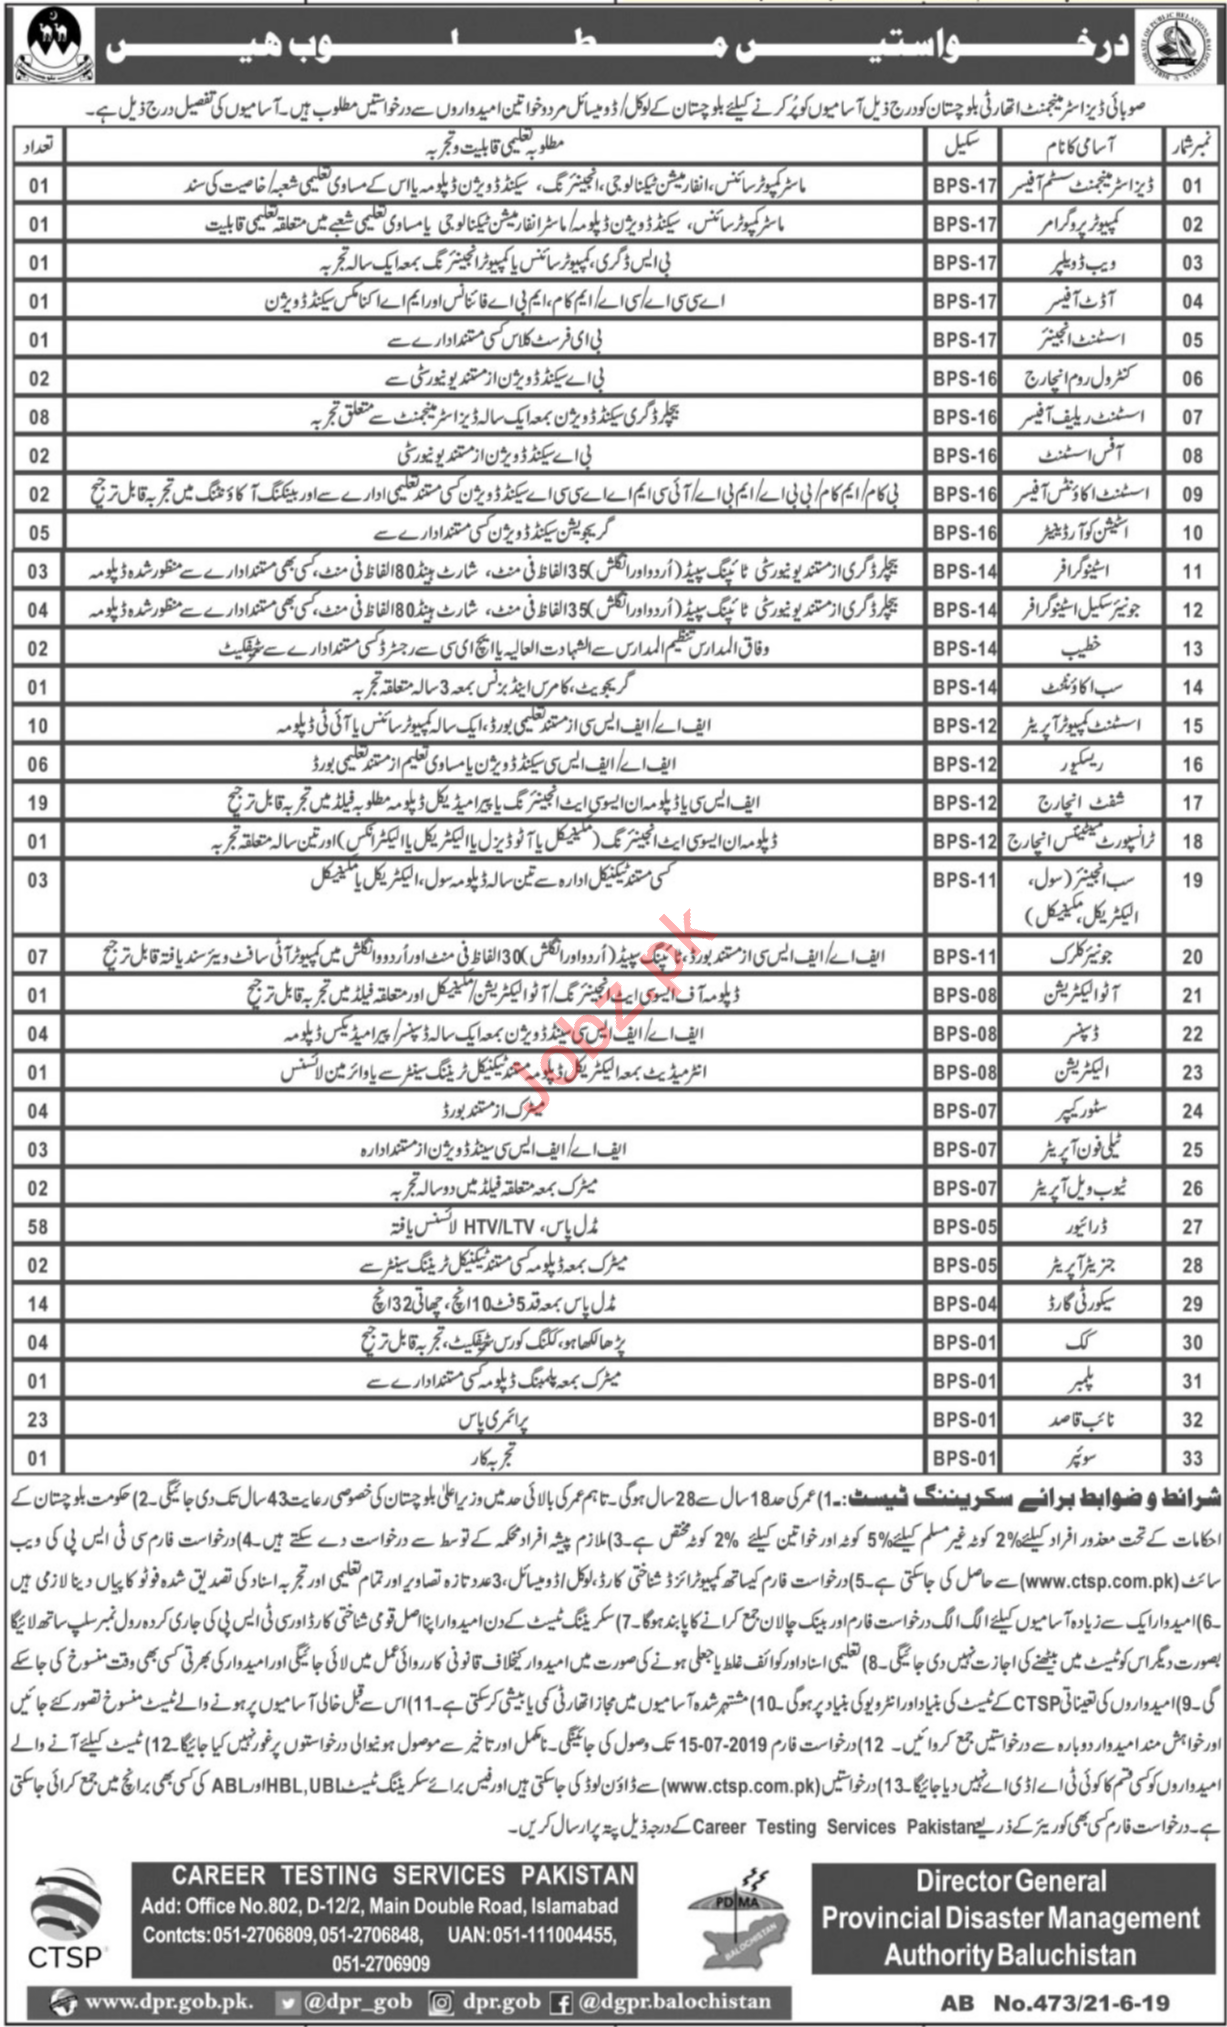 Provincial Disaster Management Authority PDMA Jobs via CTSP